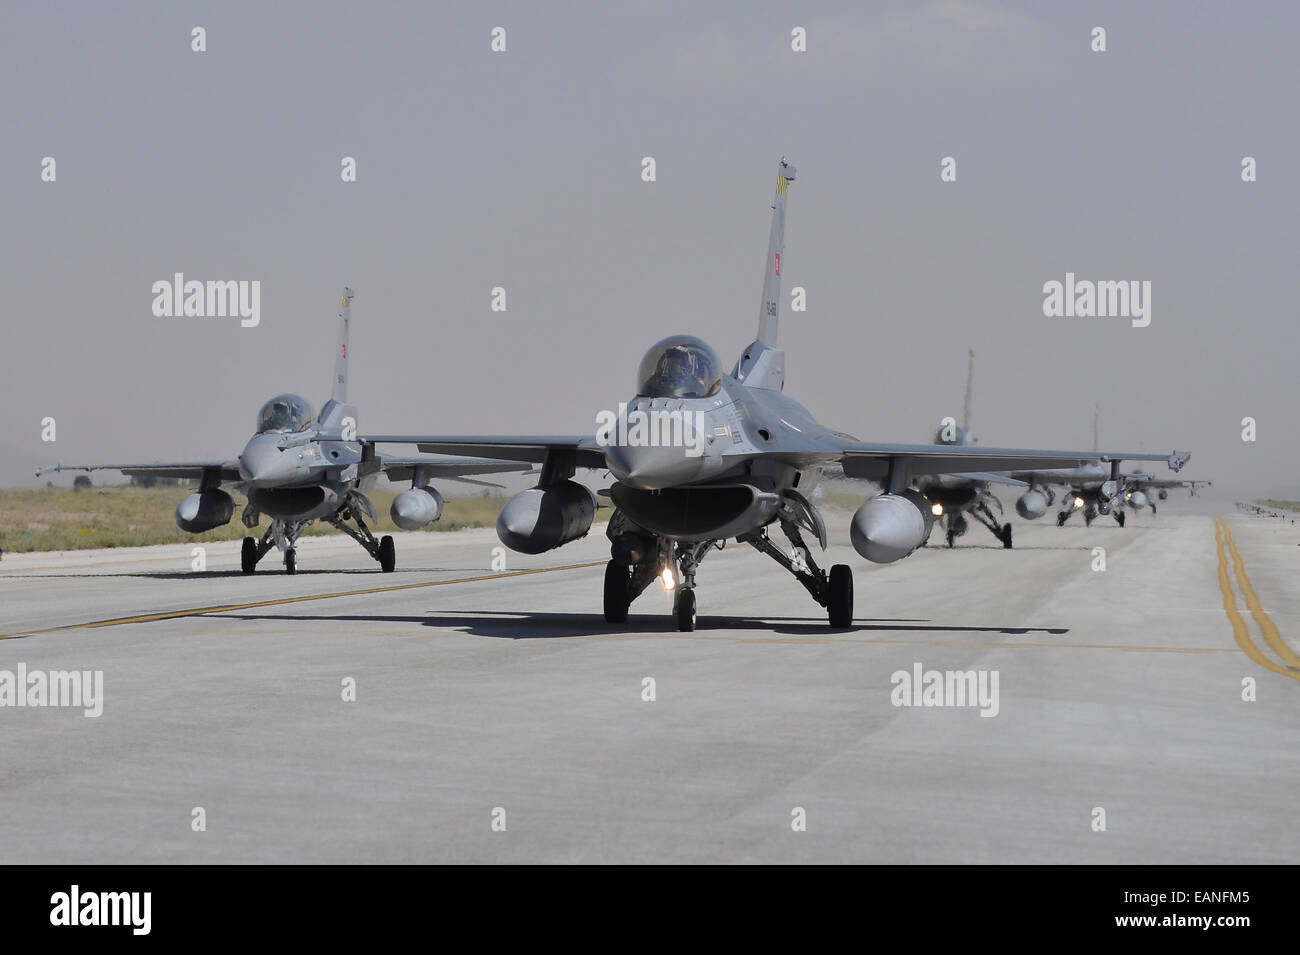 Turkish Air Force F-16C/D aircraft taxiing on the runway at Konya Air Base, Turkey, during Exercise Anatolian Eagle - Stock Image